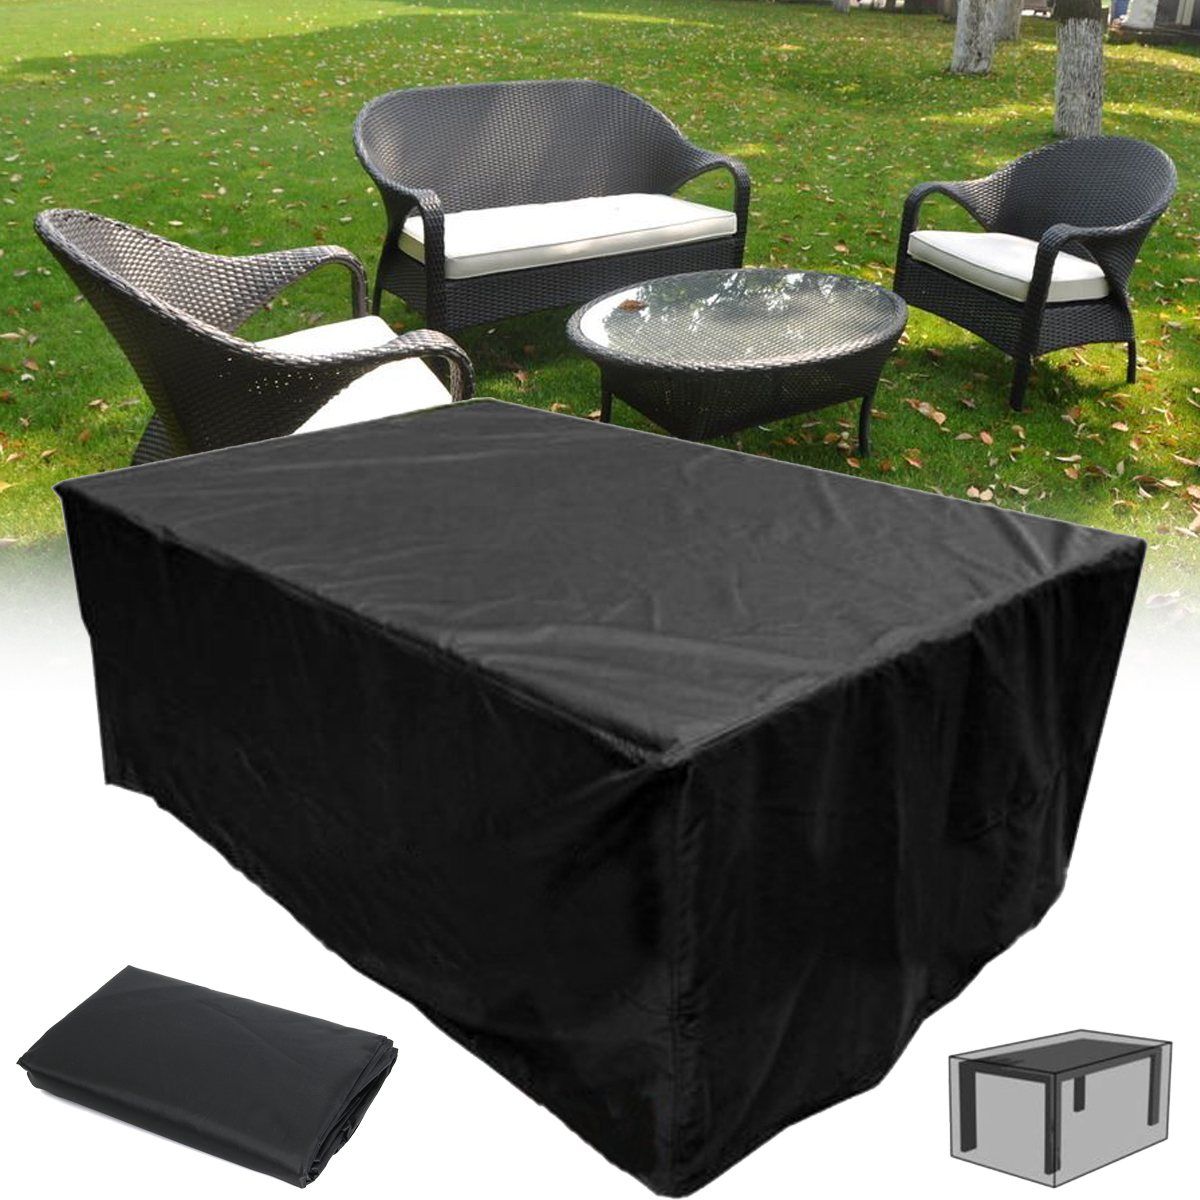 New Polyester Outdoor Furniture Covers Shelter 210 110 70cm Garden Patio Rain Sun Protection Cover Canopy Dustproof Table Cloth Tablecloths Aliexpress